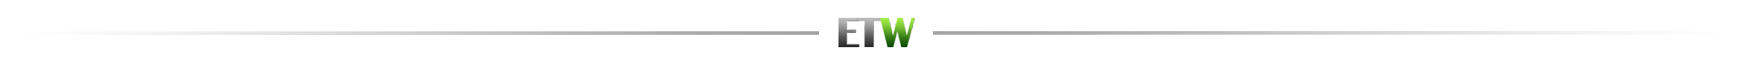 Centred ETW logo